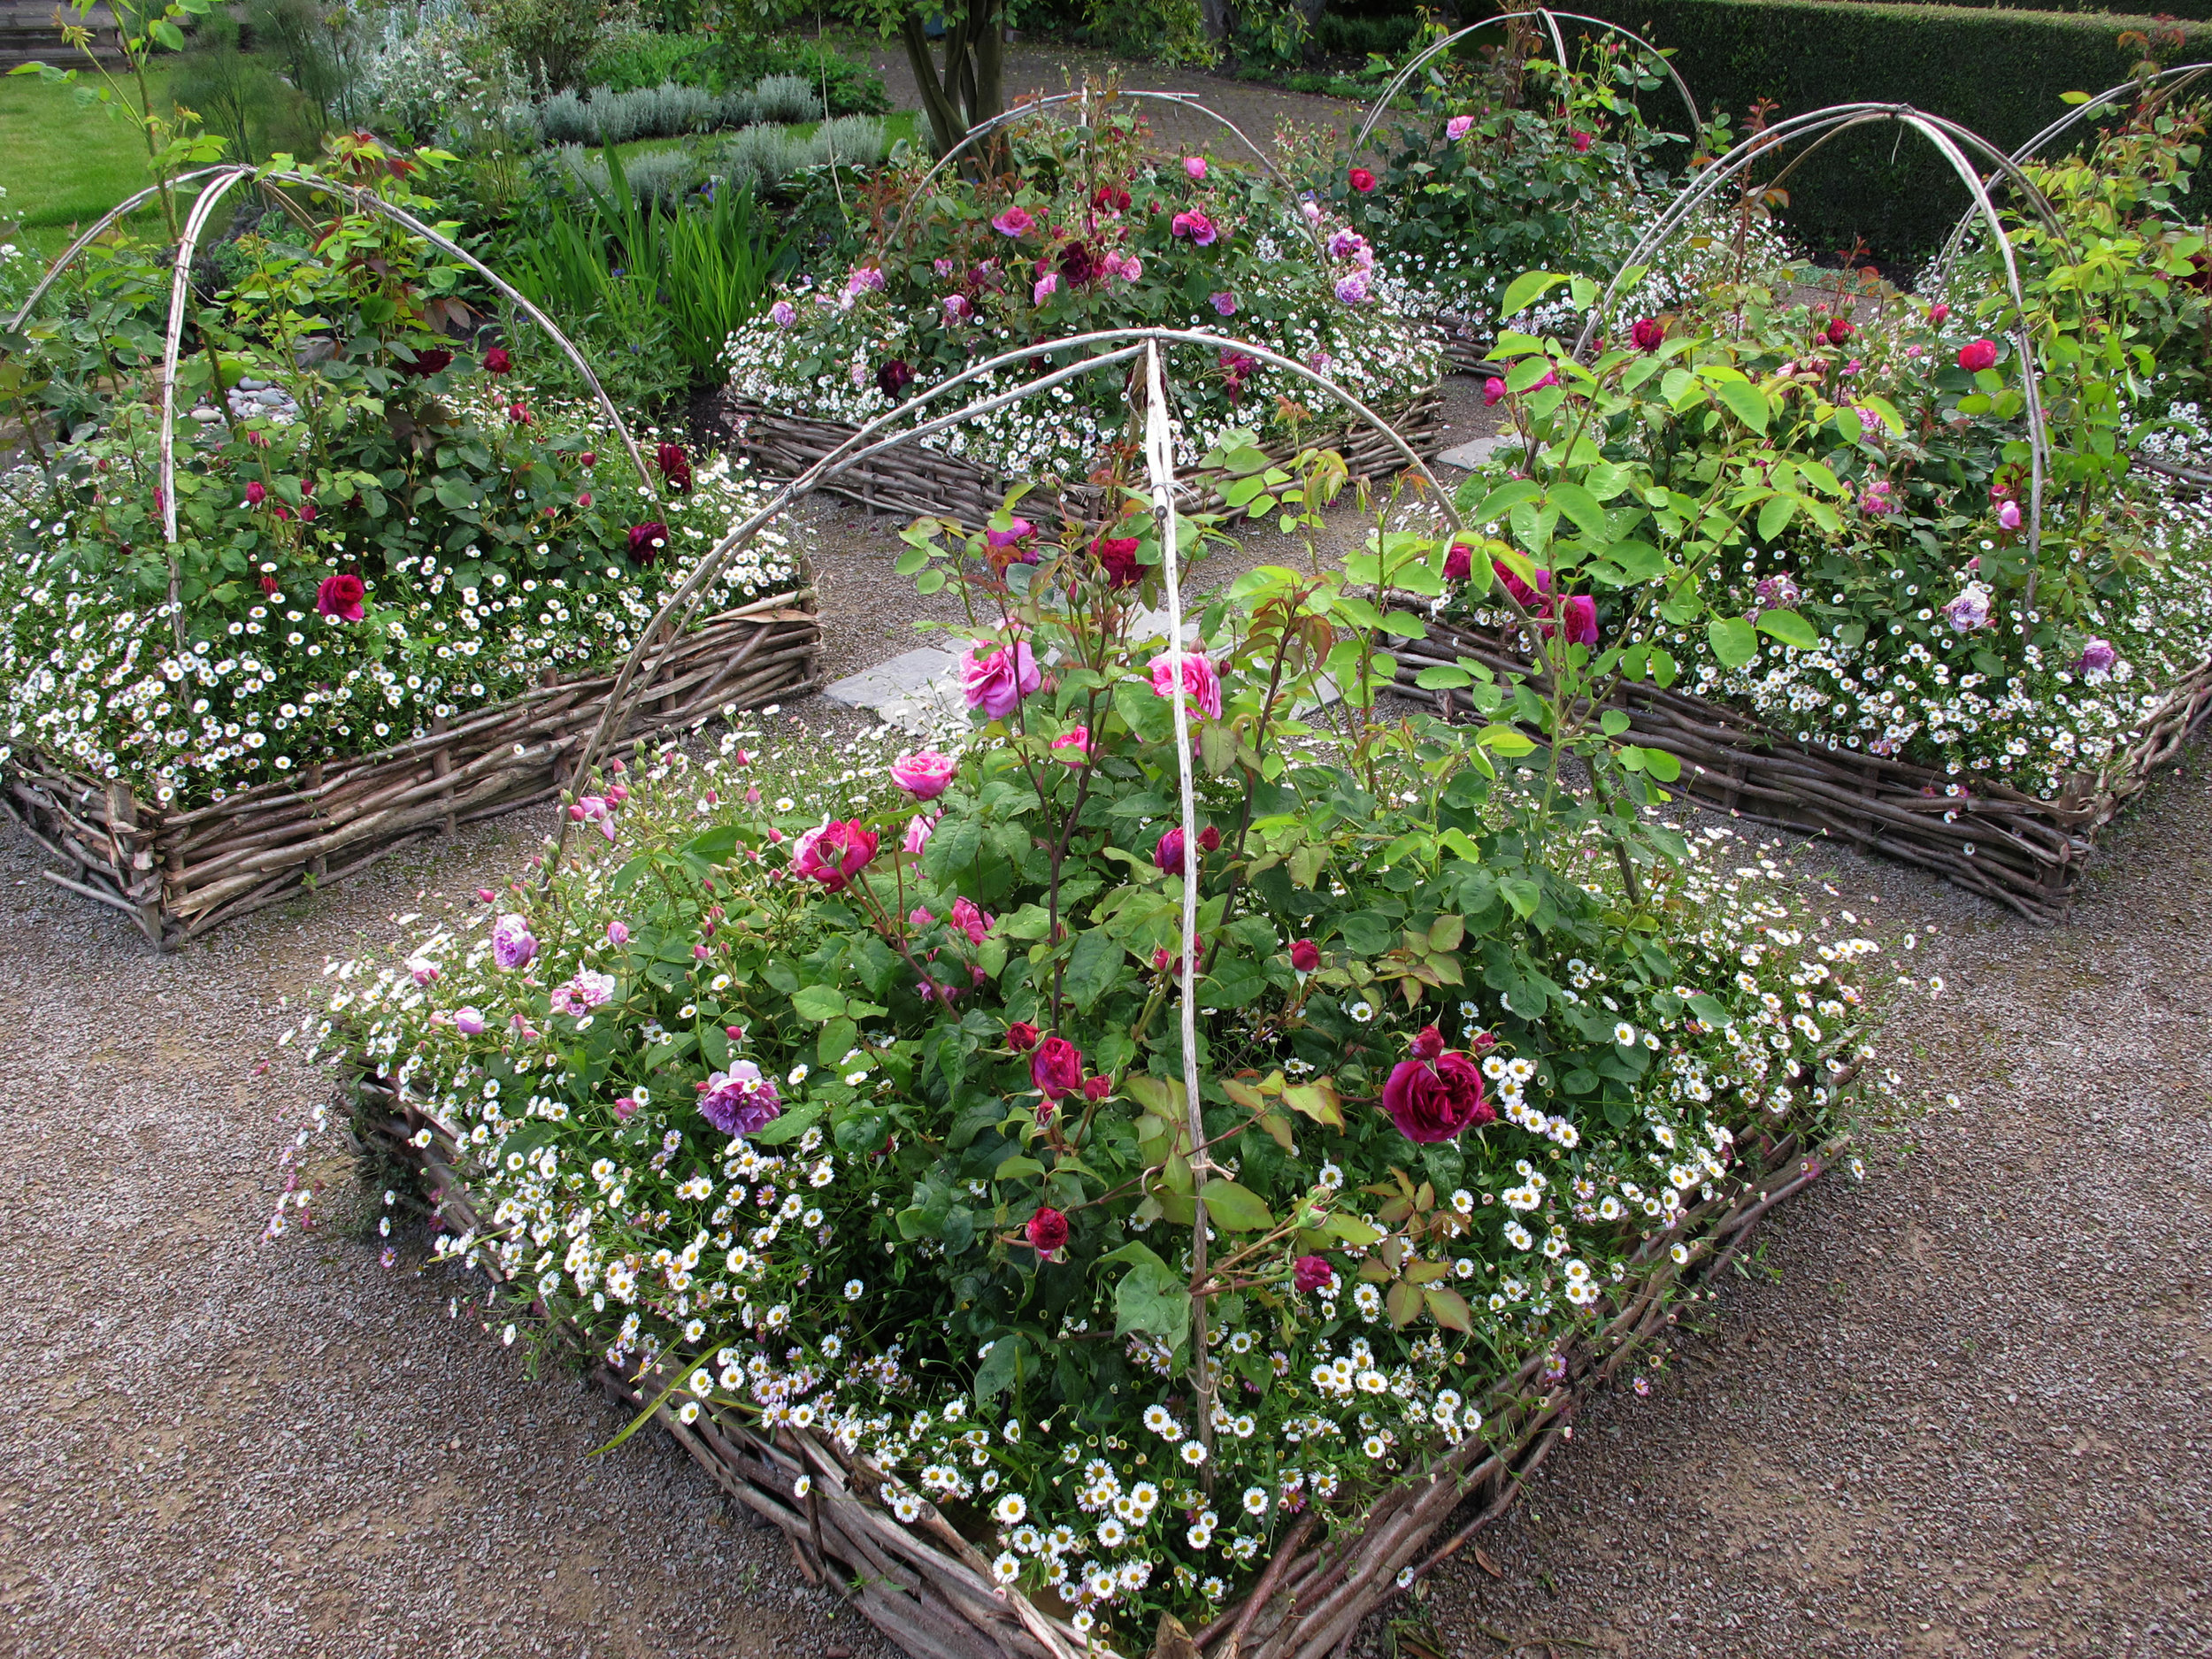 Rose Beds & Mexican Daisies, Stockton On Tees